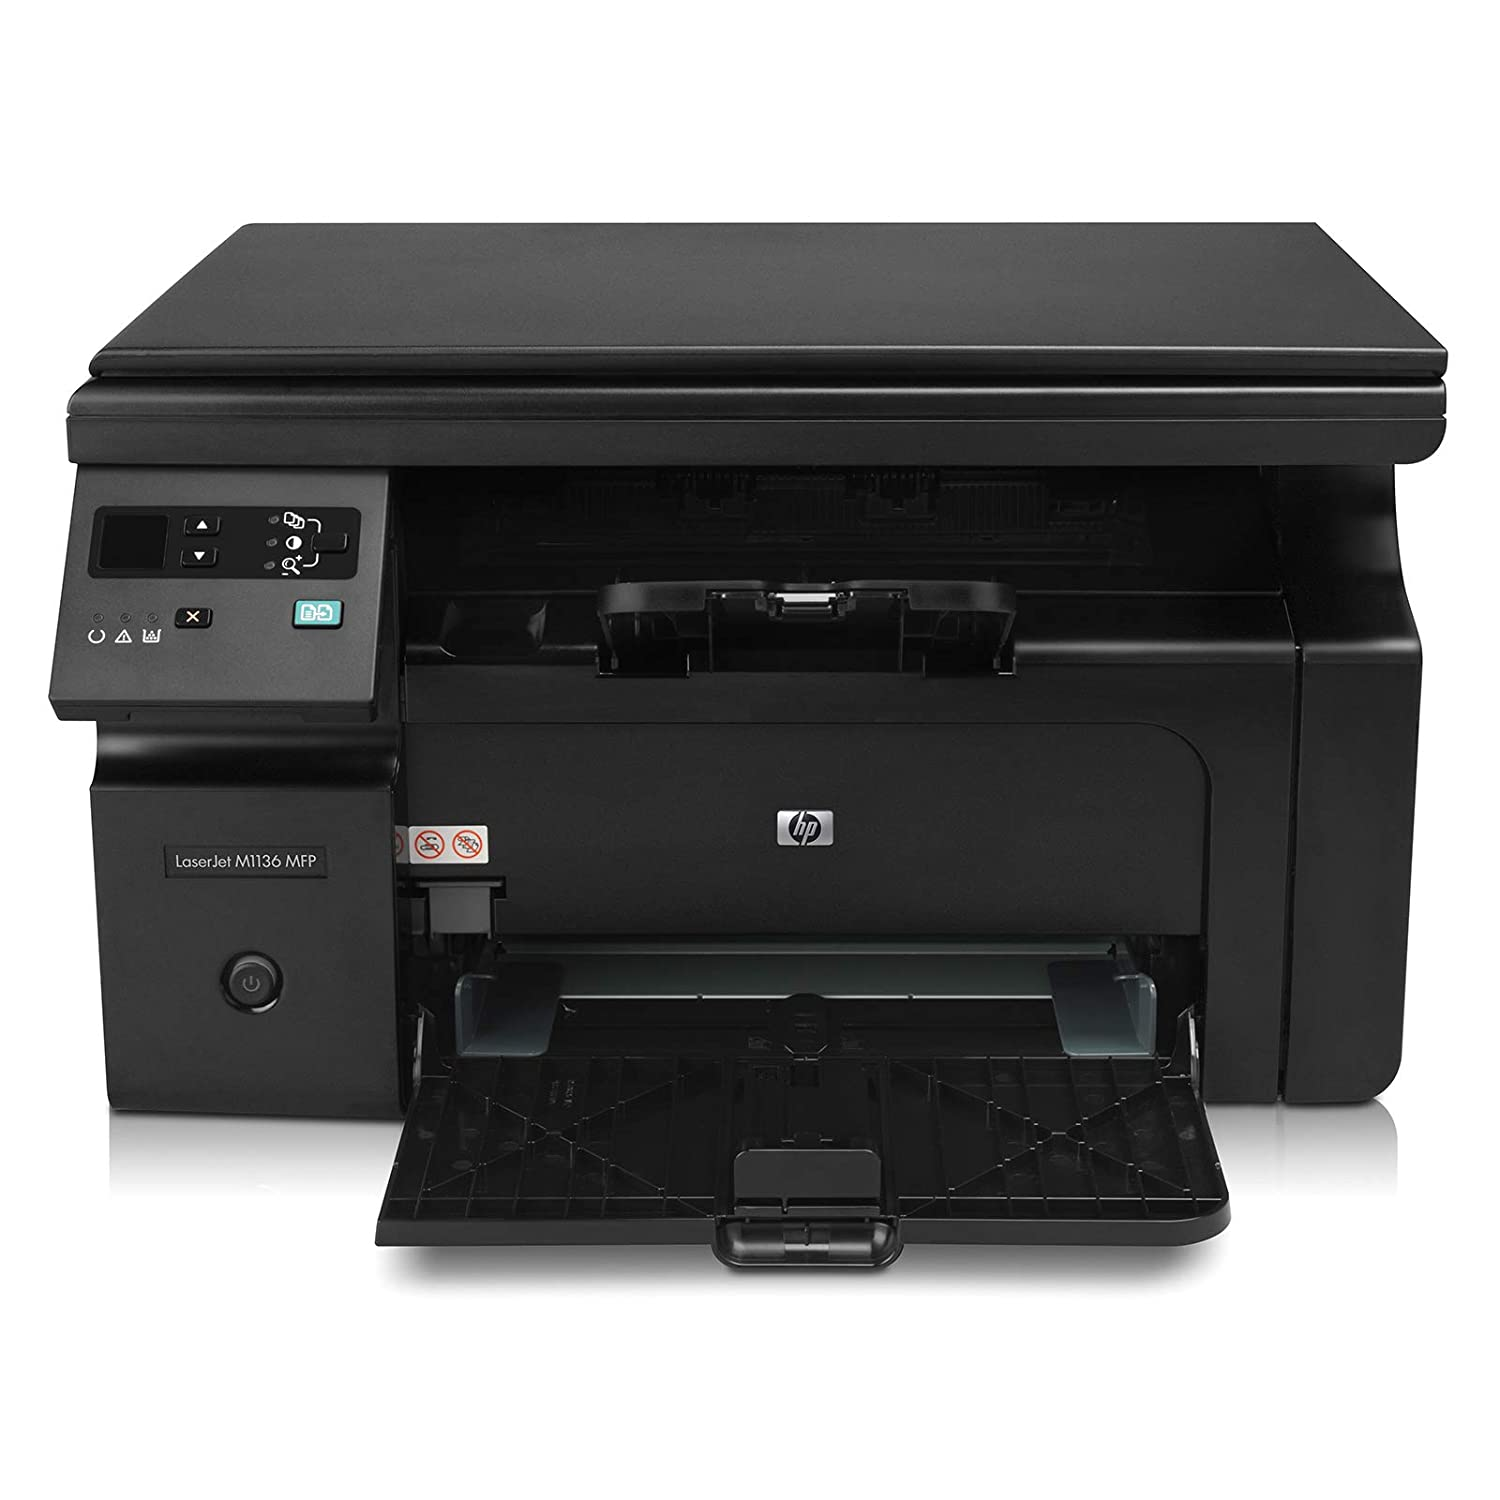 best HP laser printer with scanner for home use and office